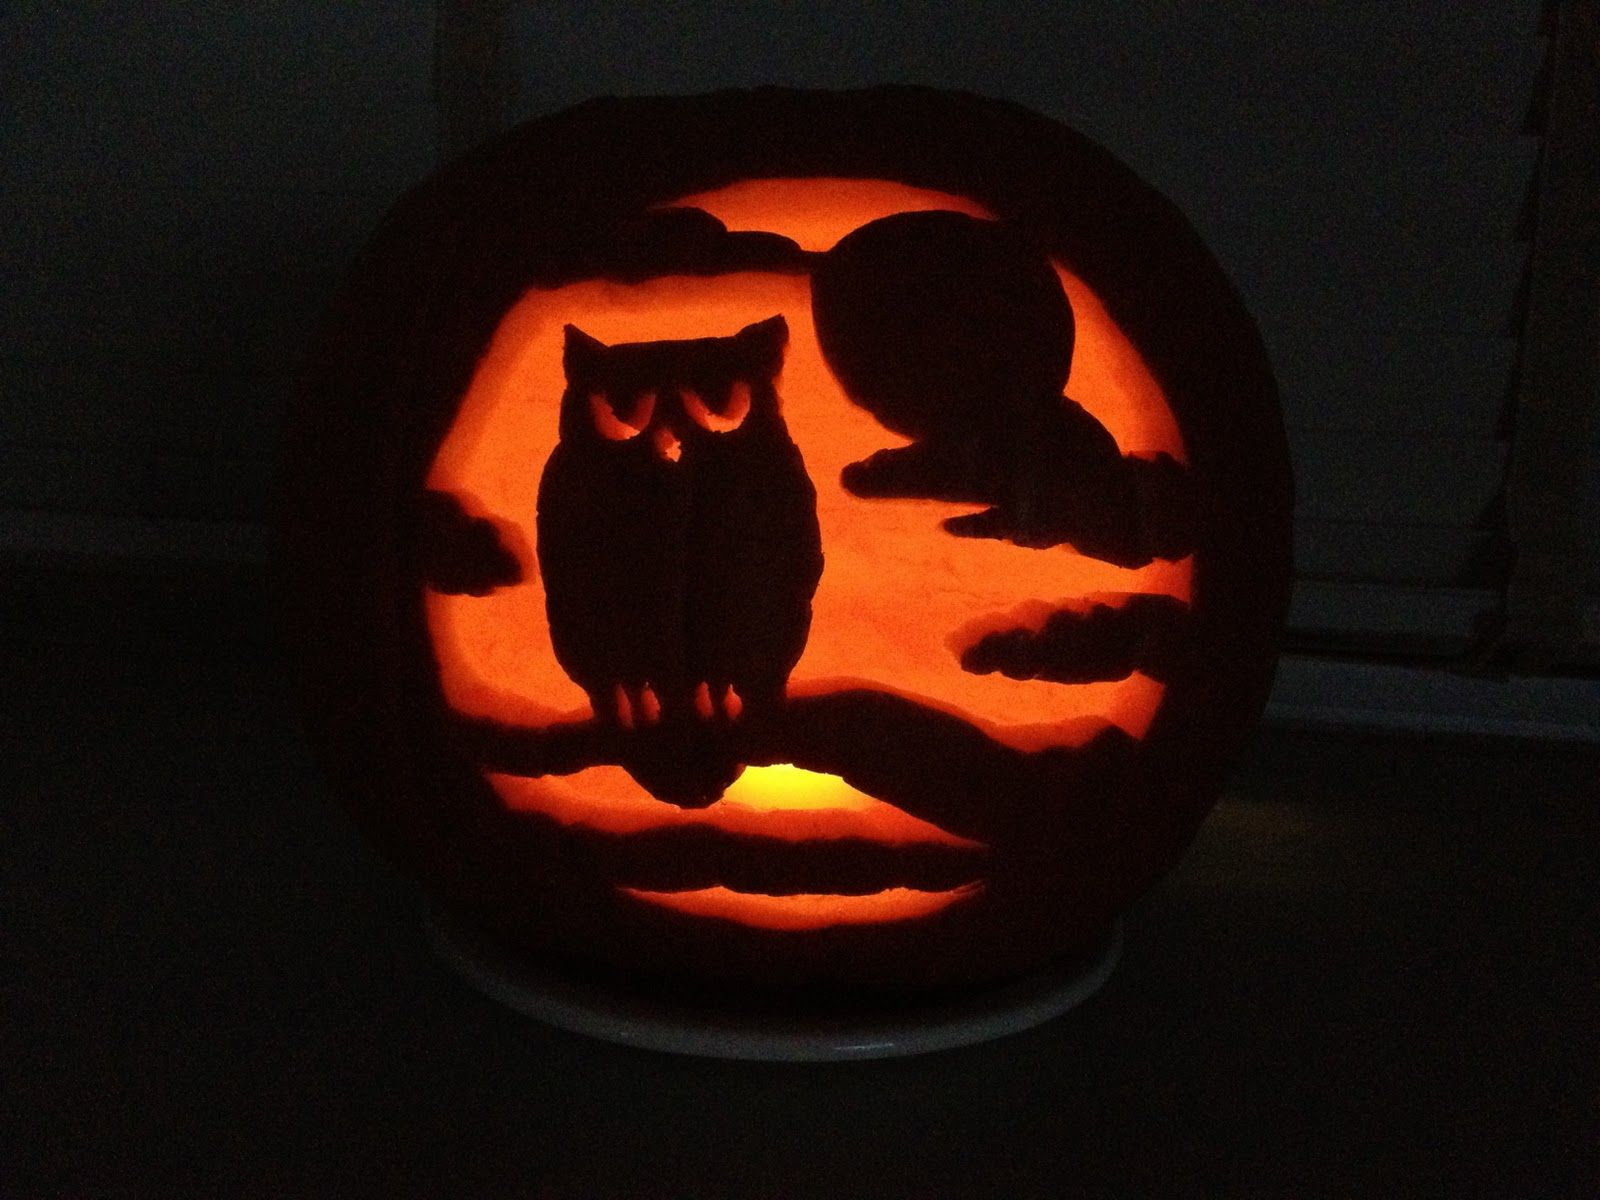 Halloween pumpkin carving template - owl on a branch with moon and ...